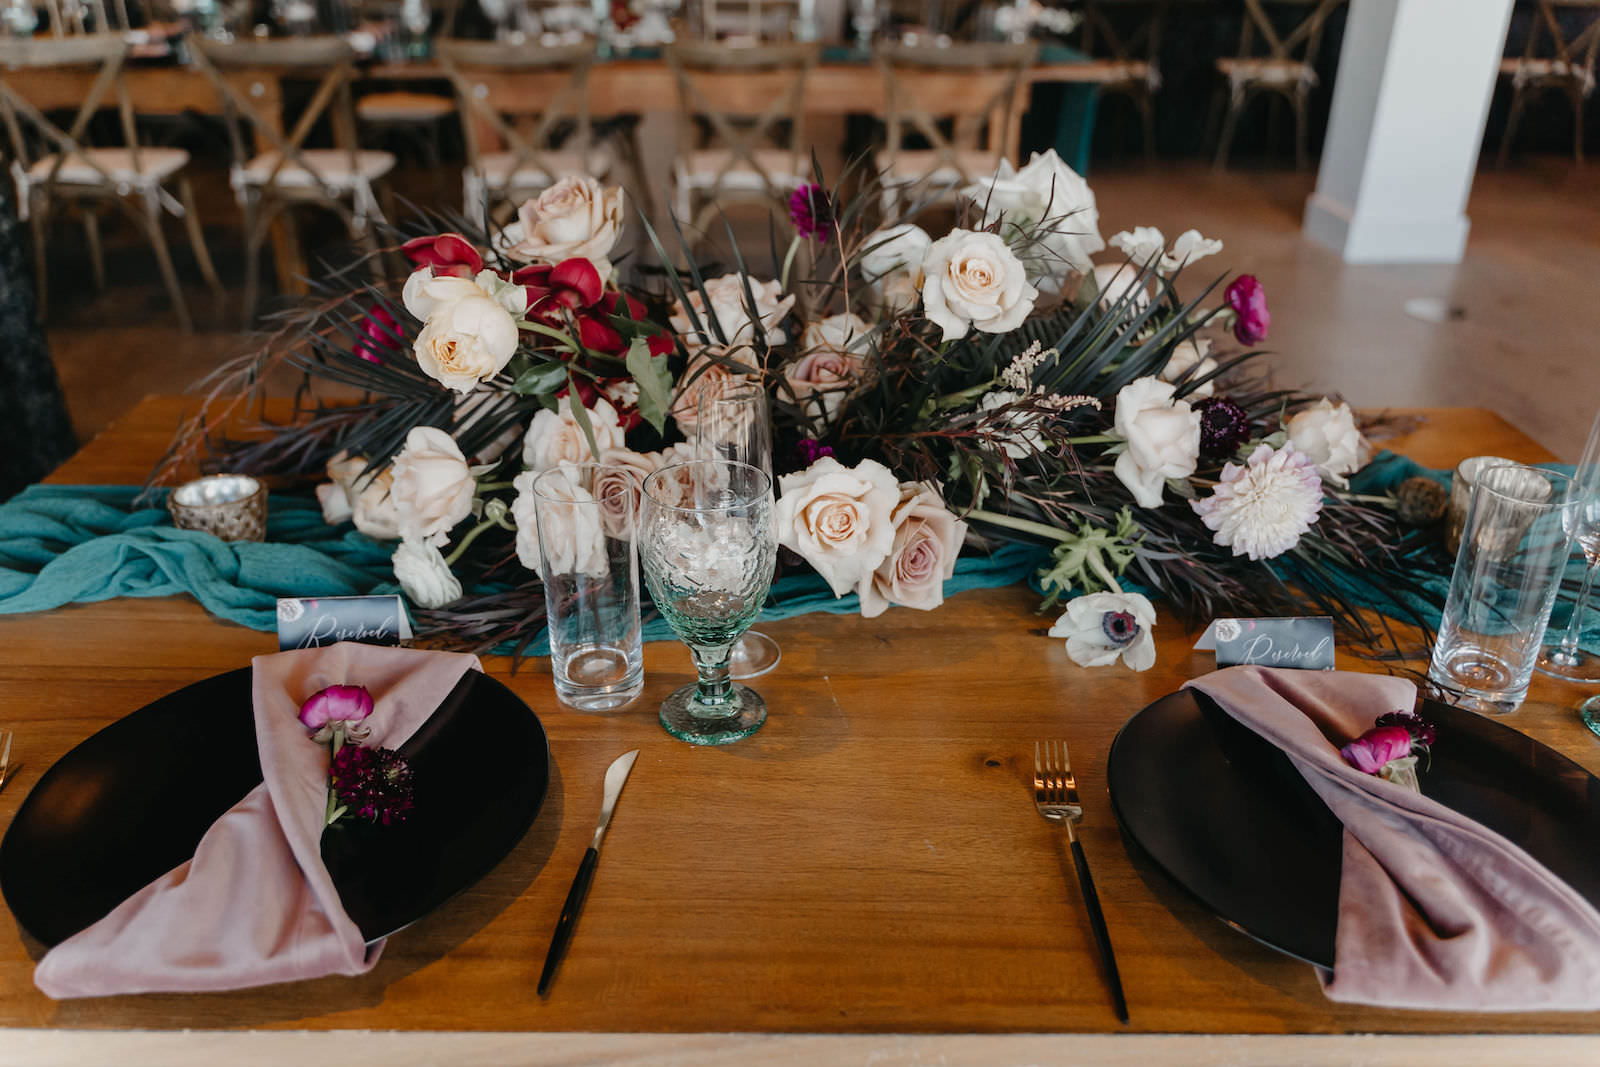 Wedding Sweetheart Table Centerpiece with Dark Emerald Green Cheesecloth Gossamer Runners and Mauve Blush Pink Velvet Napkins on Black China Plates   Low Boho Centerpieces with Dark Green and Black Leaves, Scabiosa Pods, Pink Dahlias and Ranunculus, and Blush Cafe au Lait Roses